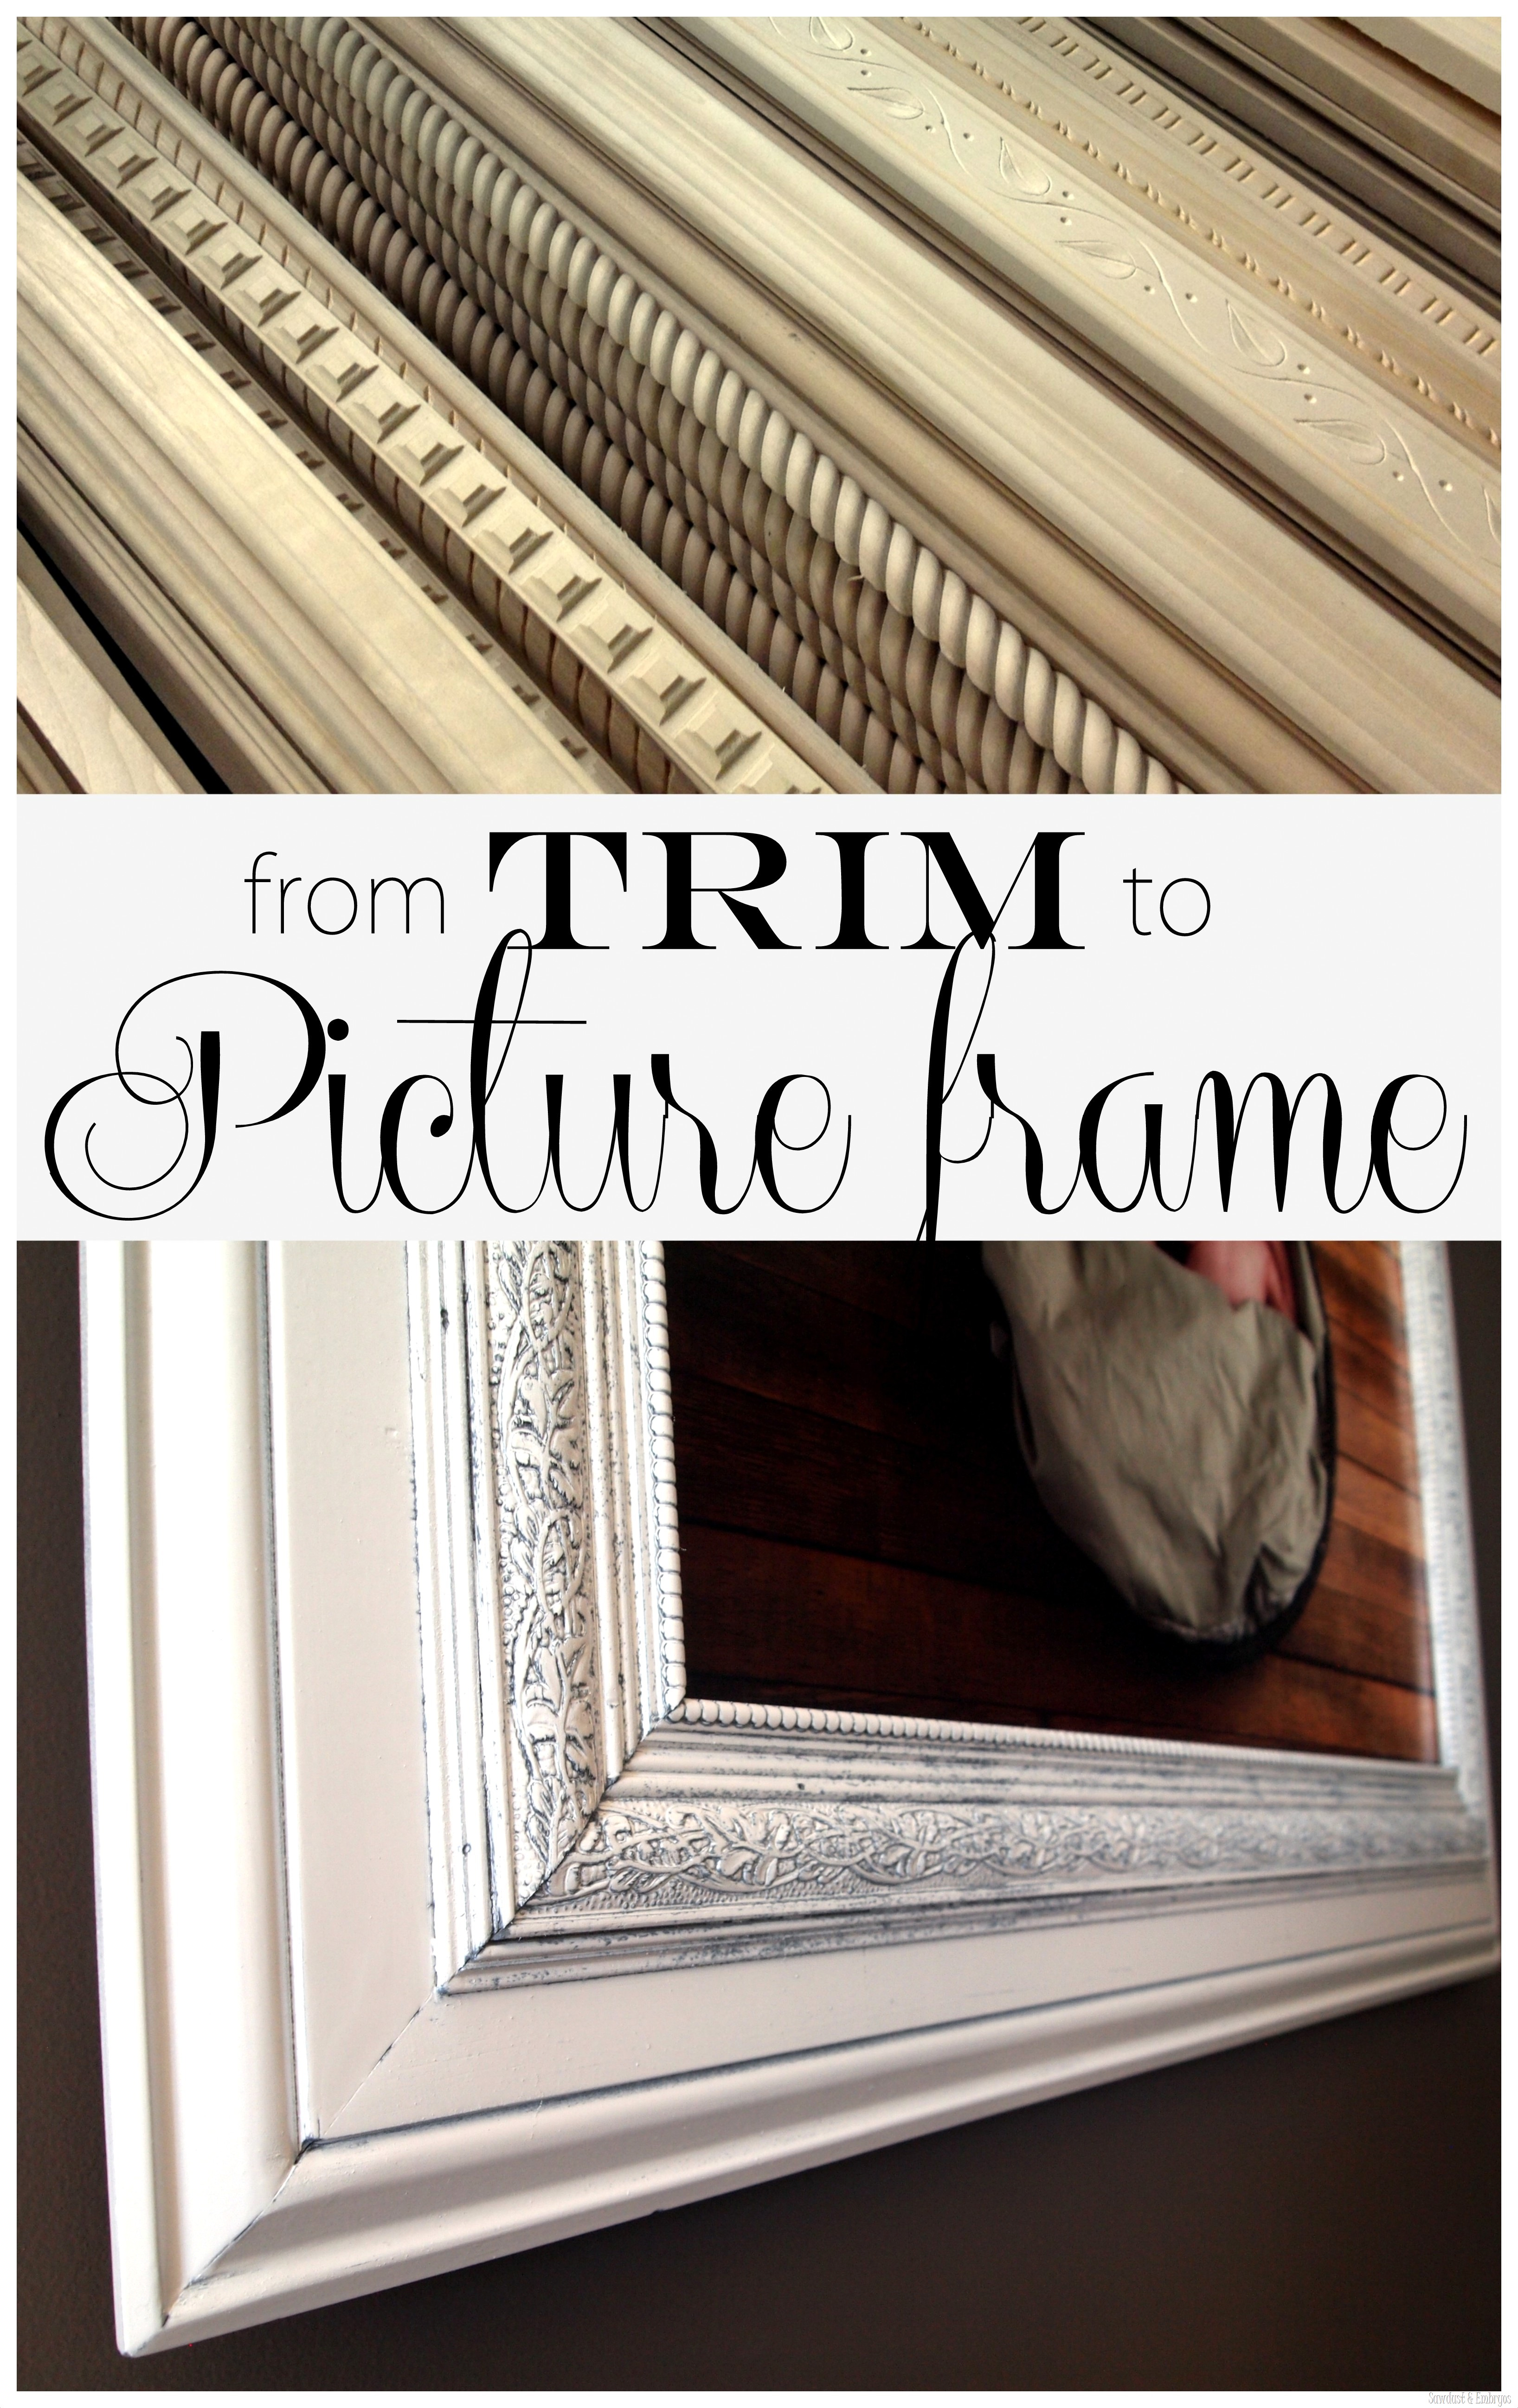 build your own custom giant picture frame using layered trim pieces sawdust embryos